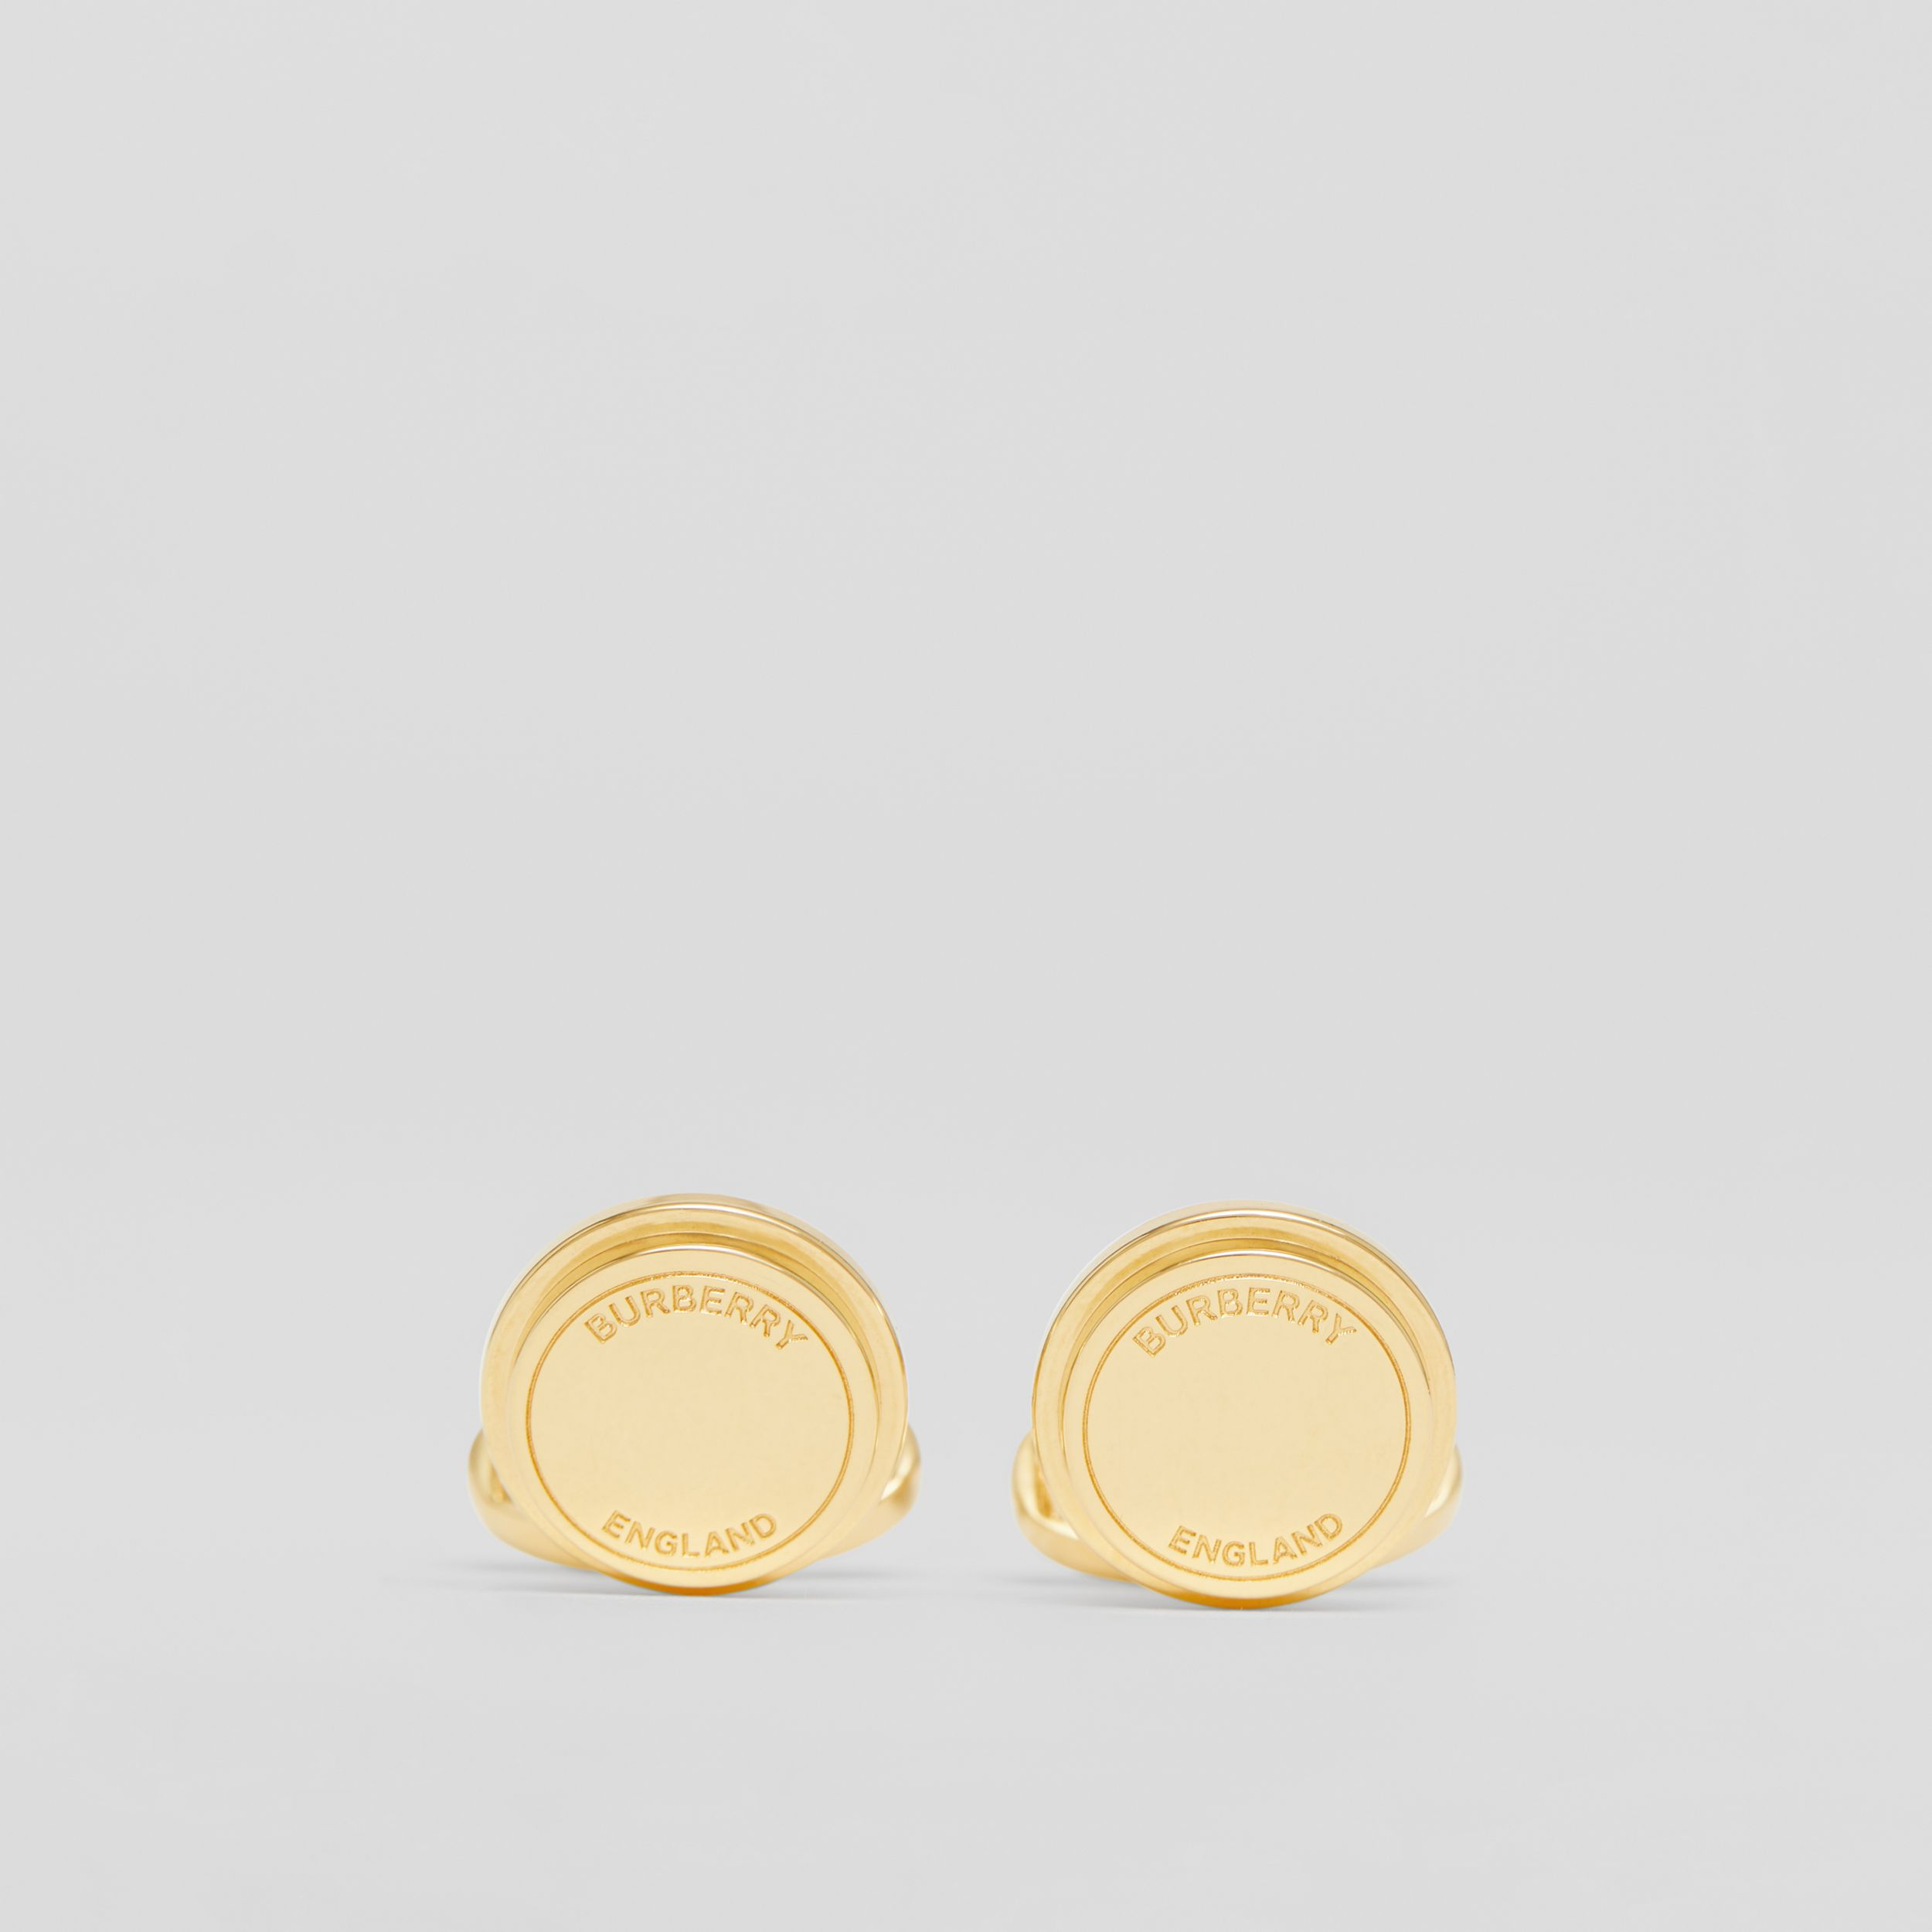 Engraved Gold-plated Cufflinks in Light - Men | Burberry - 1